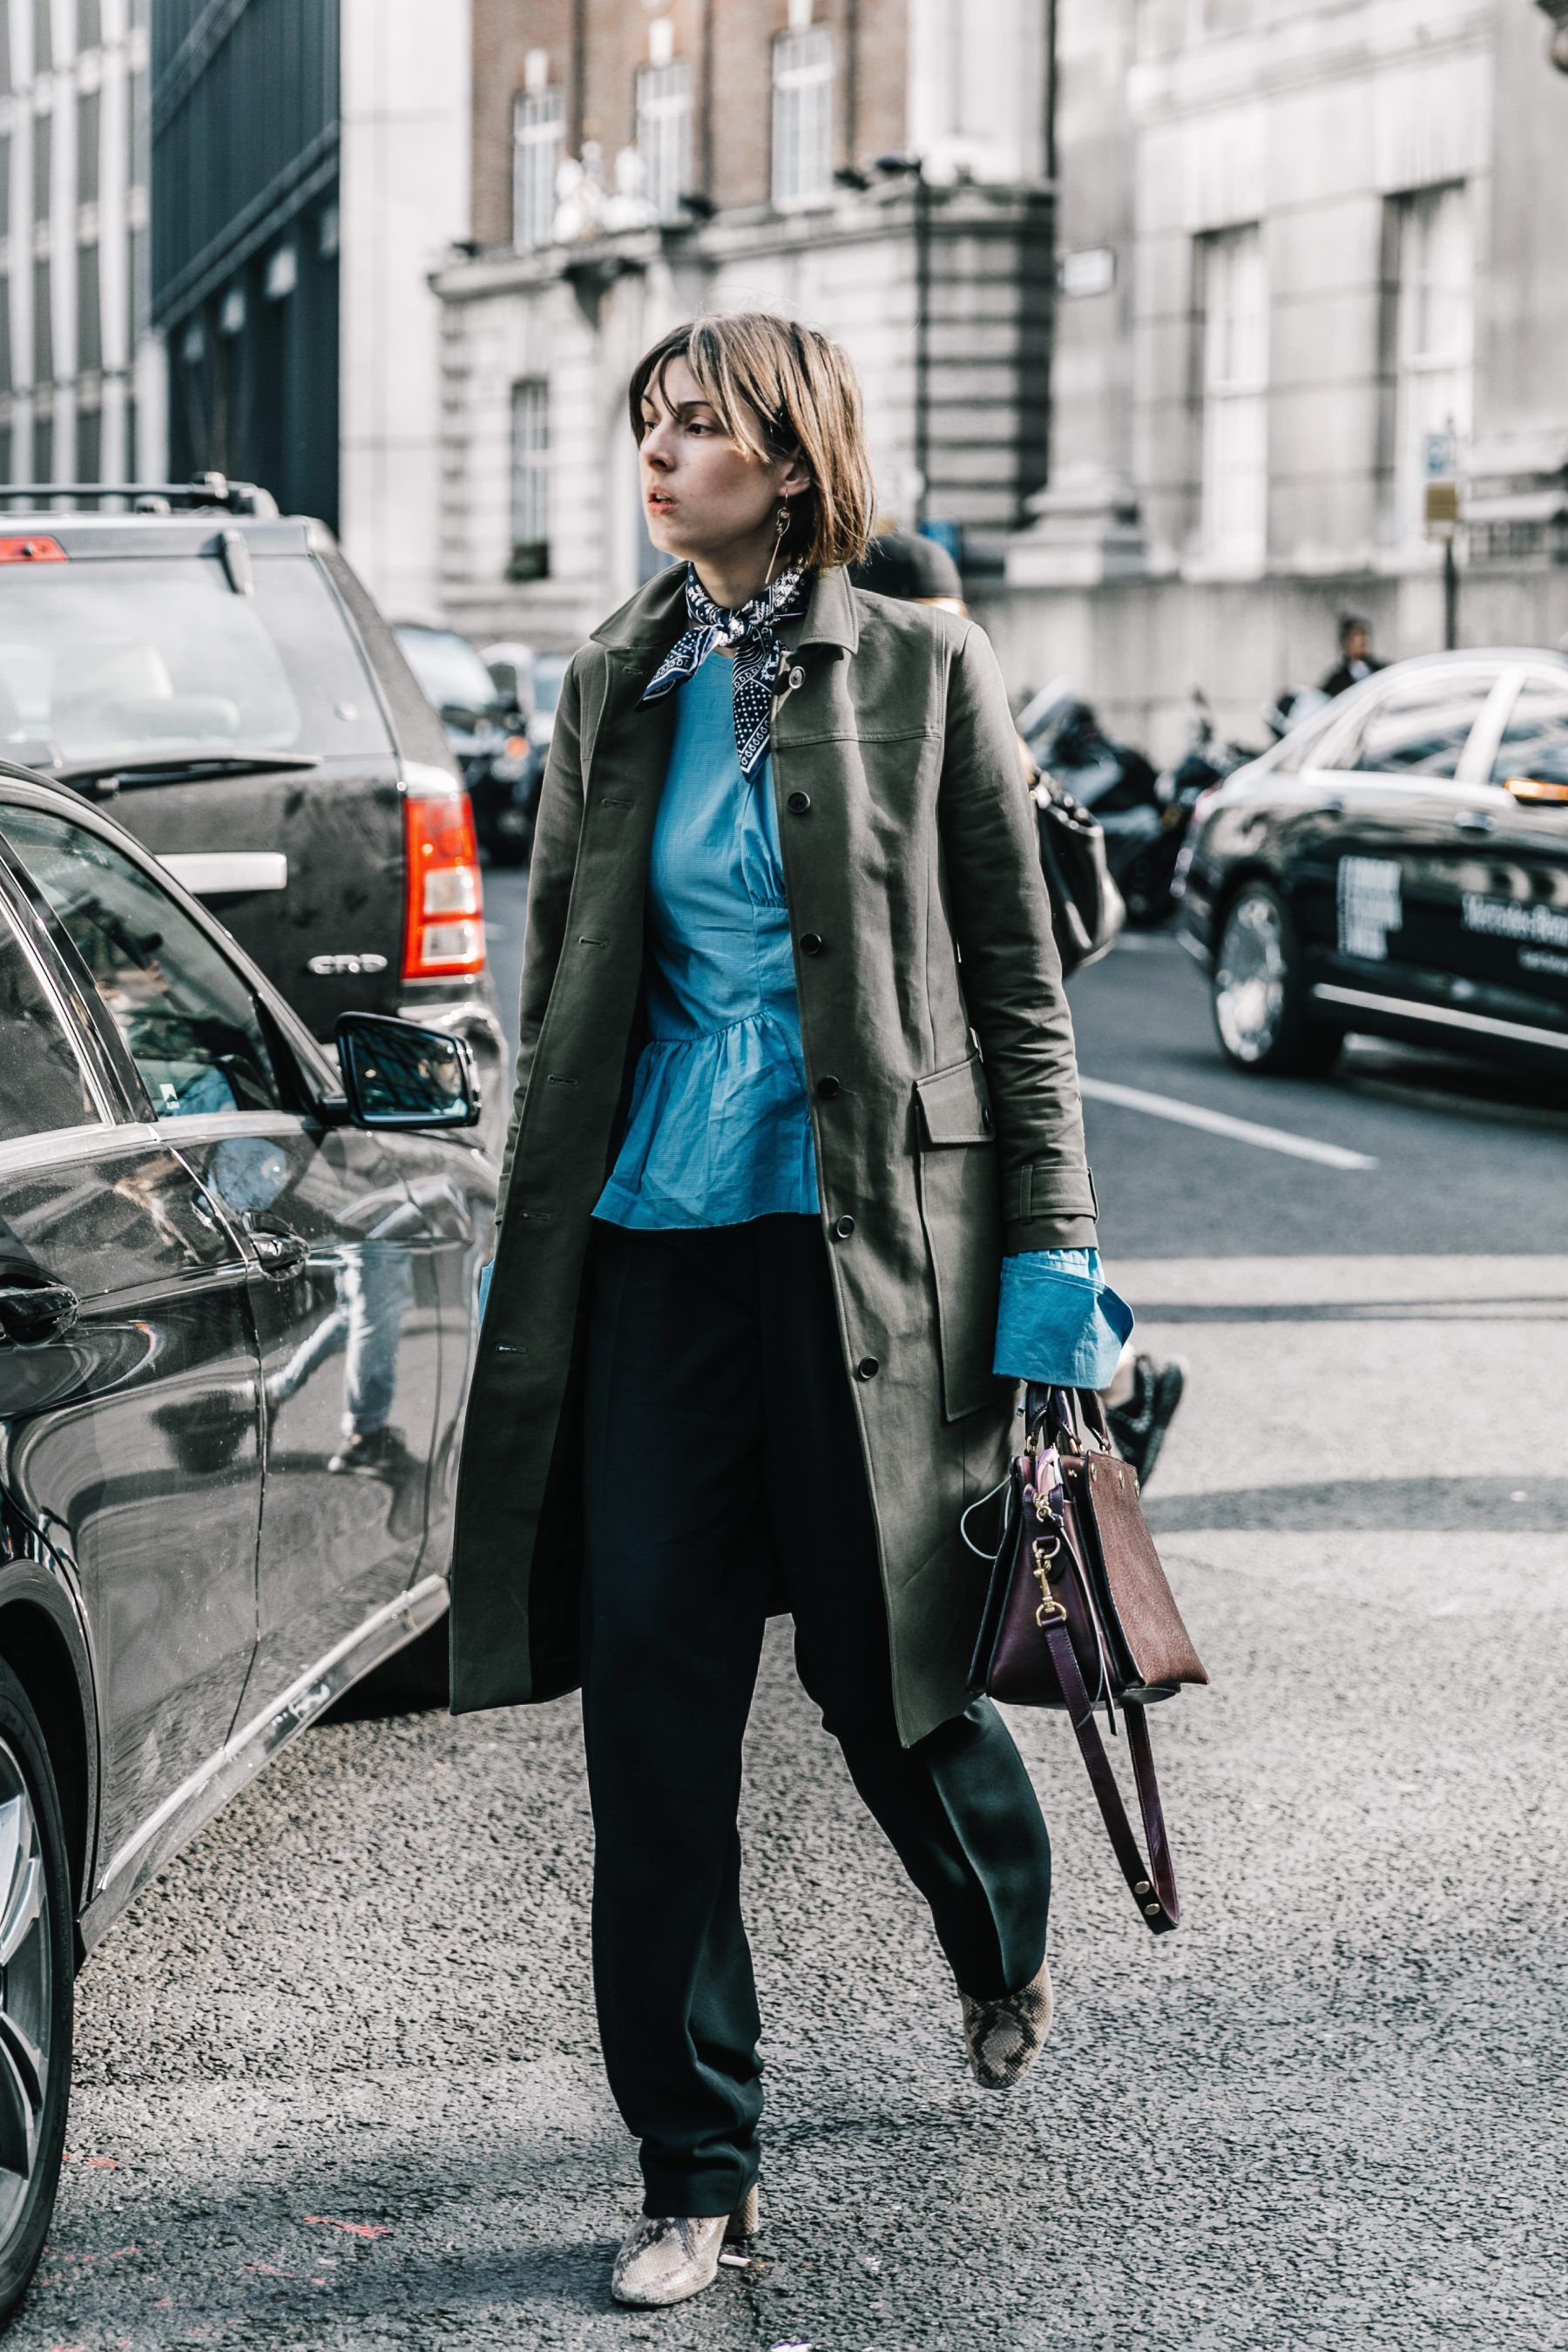 Street Style At London Fashion Week With Anouk: LFW Street Style I